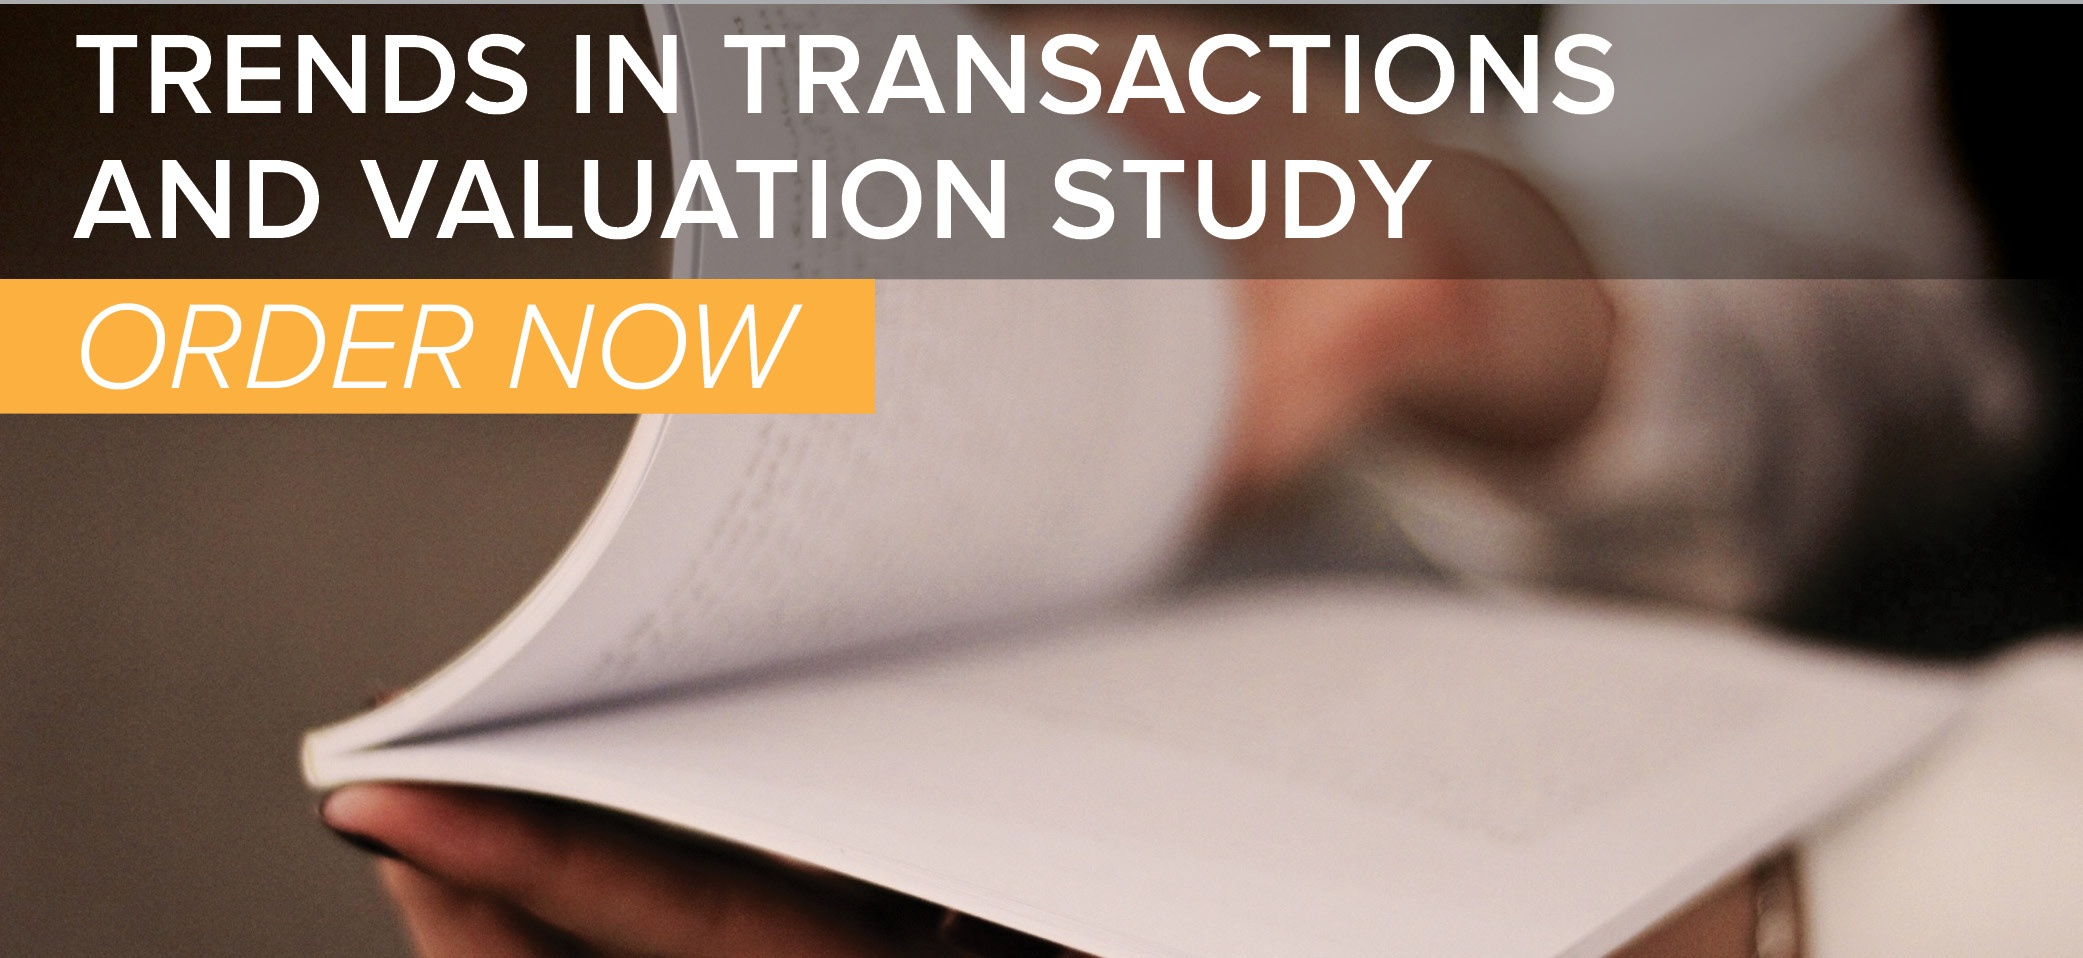 ORDER Our 2019 Trends in Transactions and Valuation Study